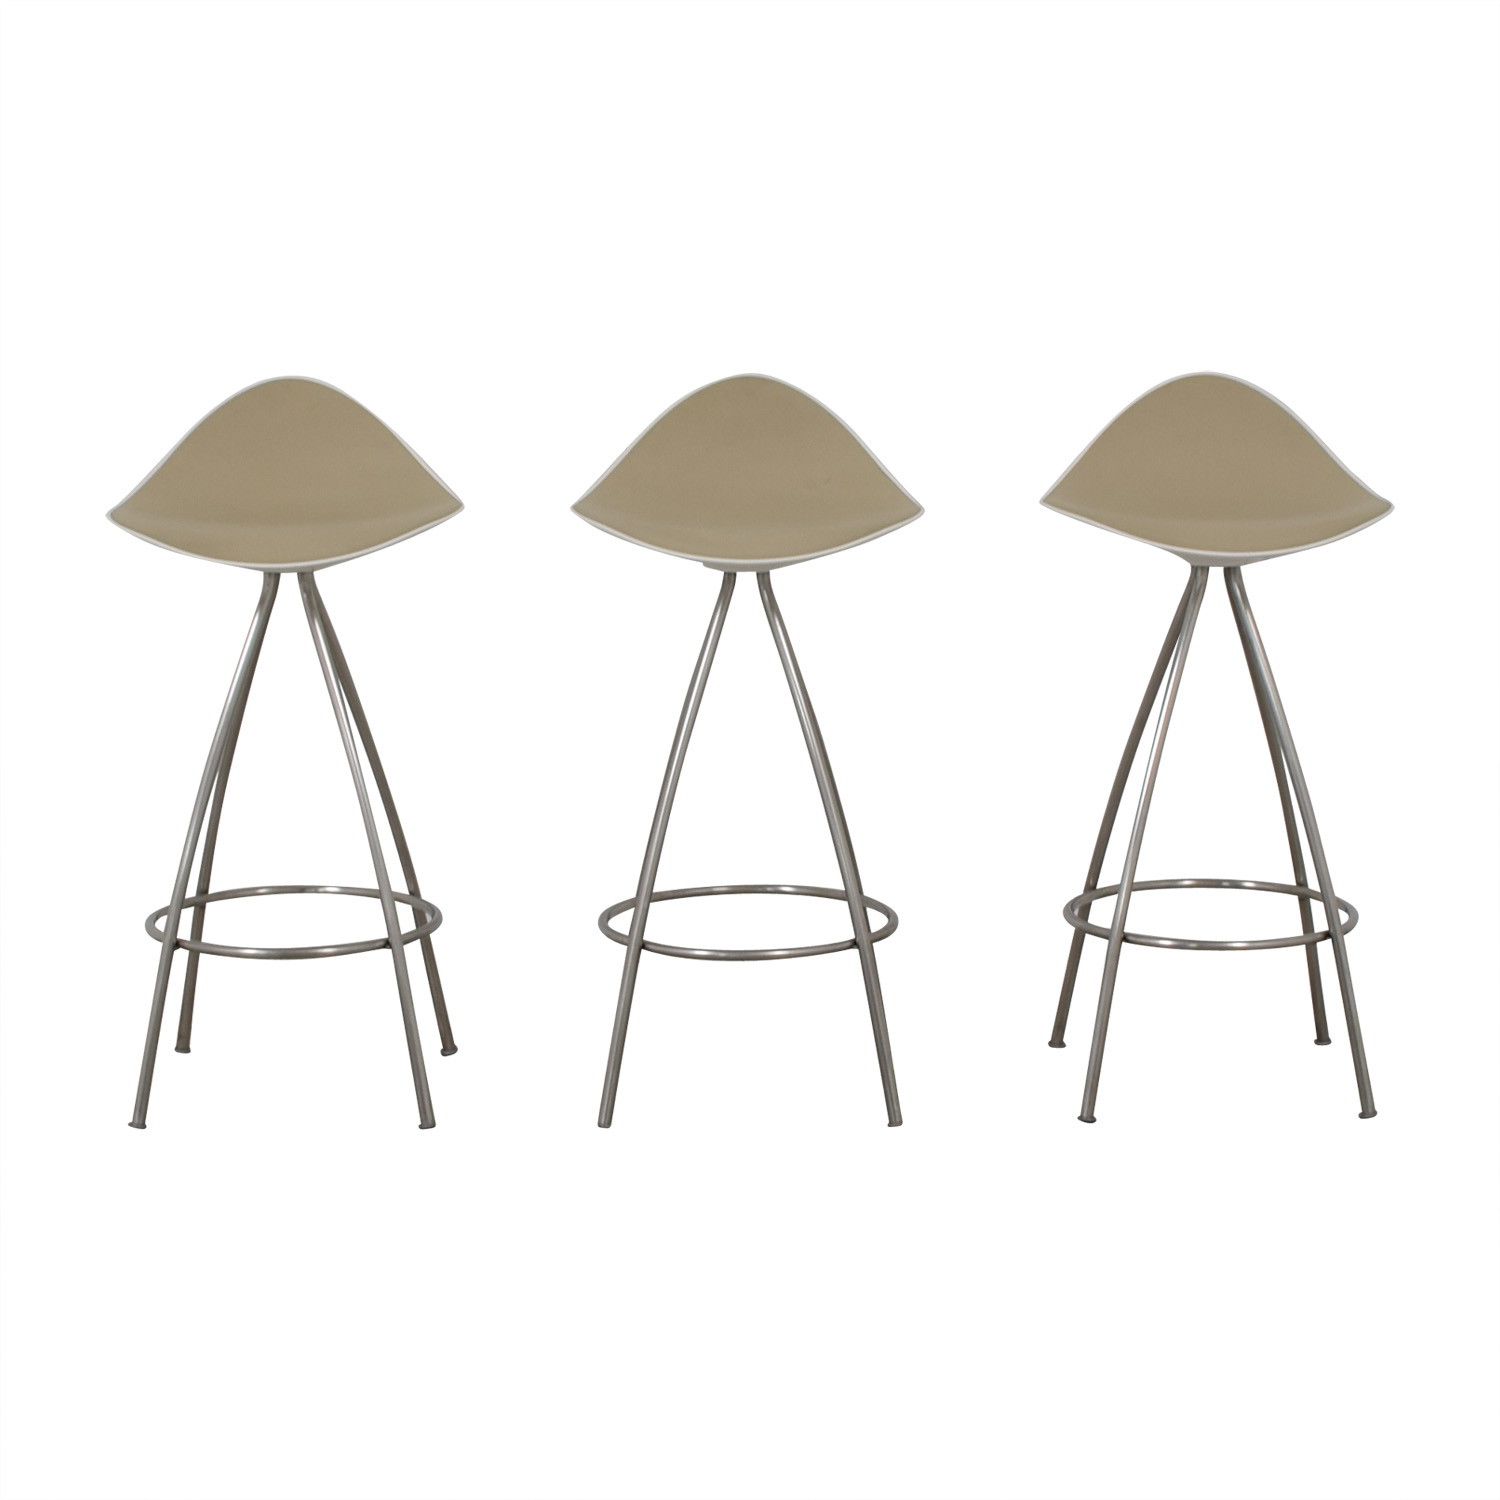 Design Within Reach Design Within Reach Stua Onda Barstools Stools